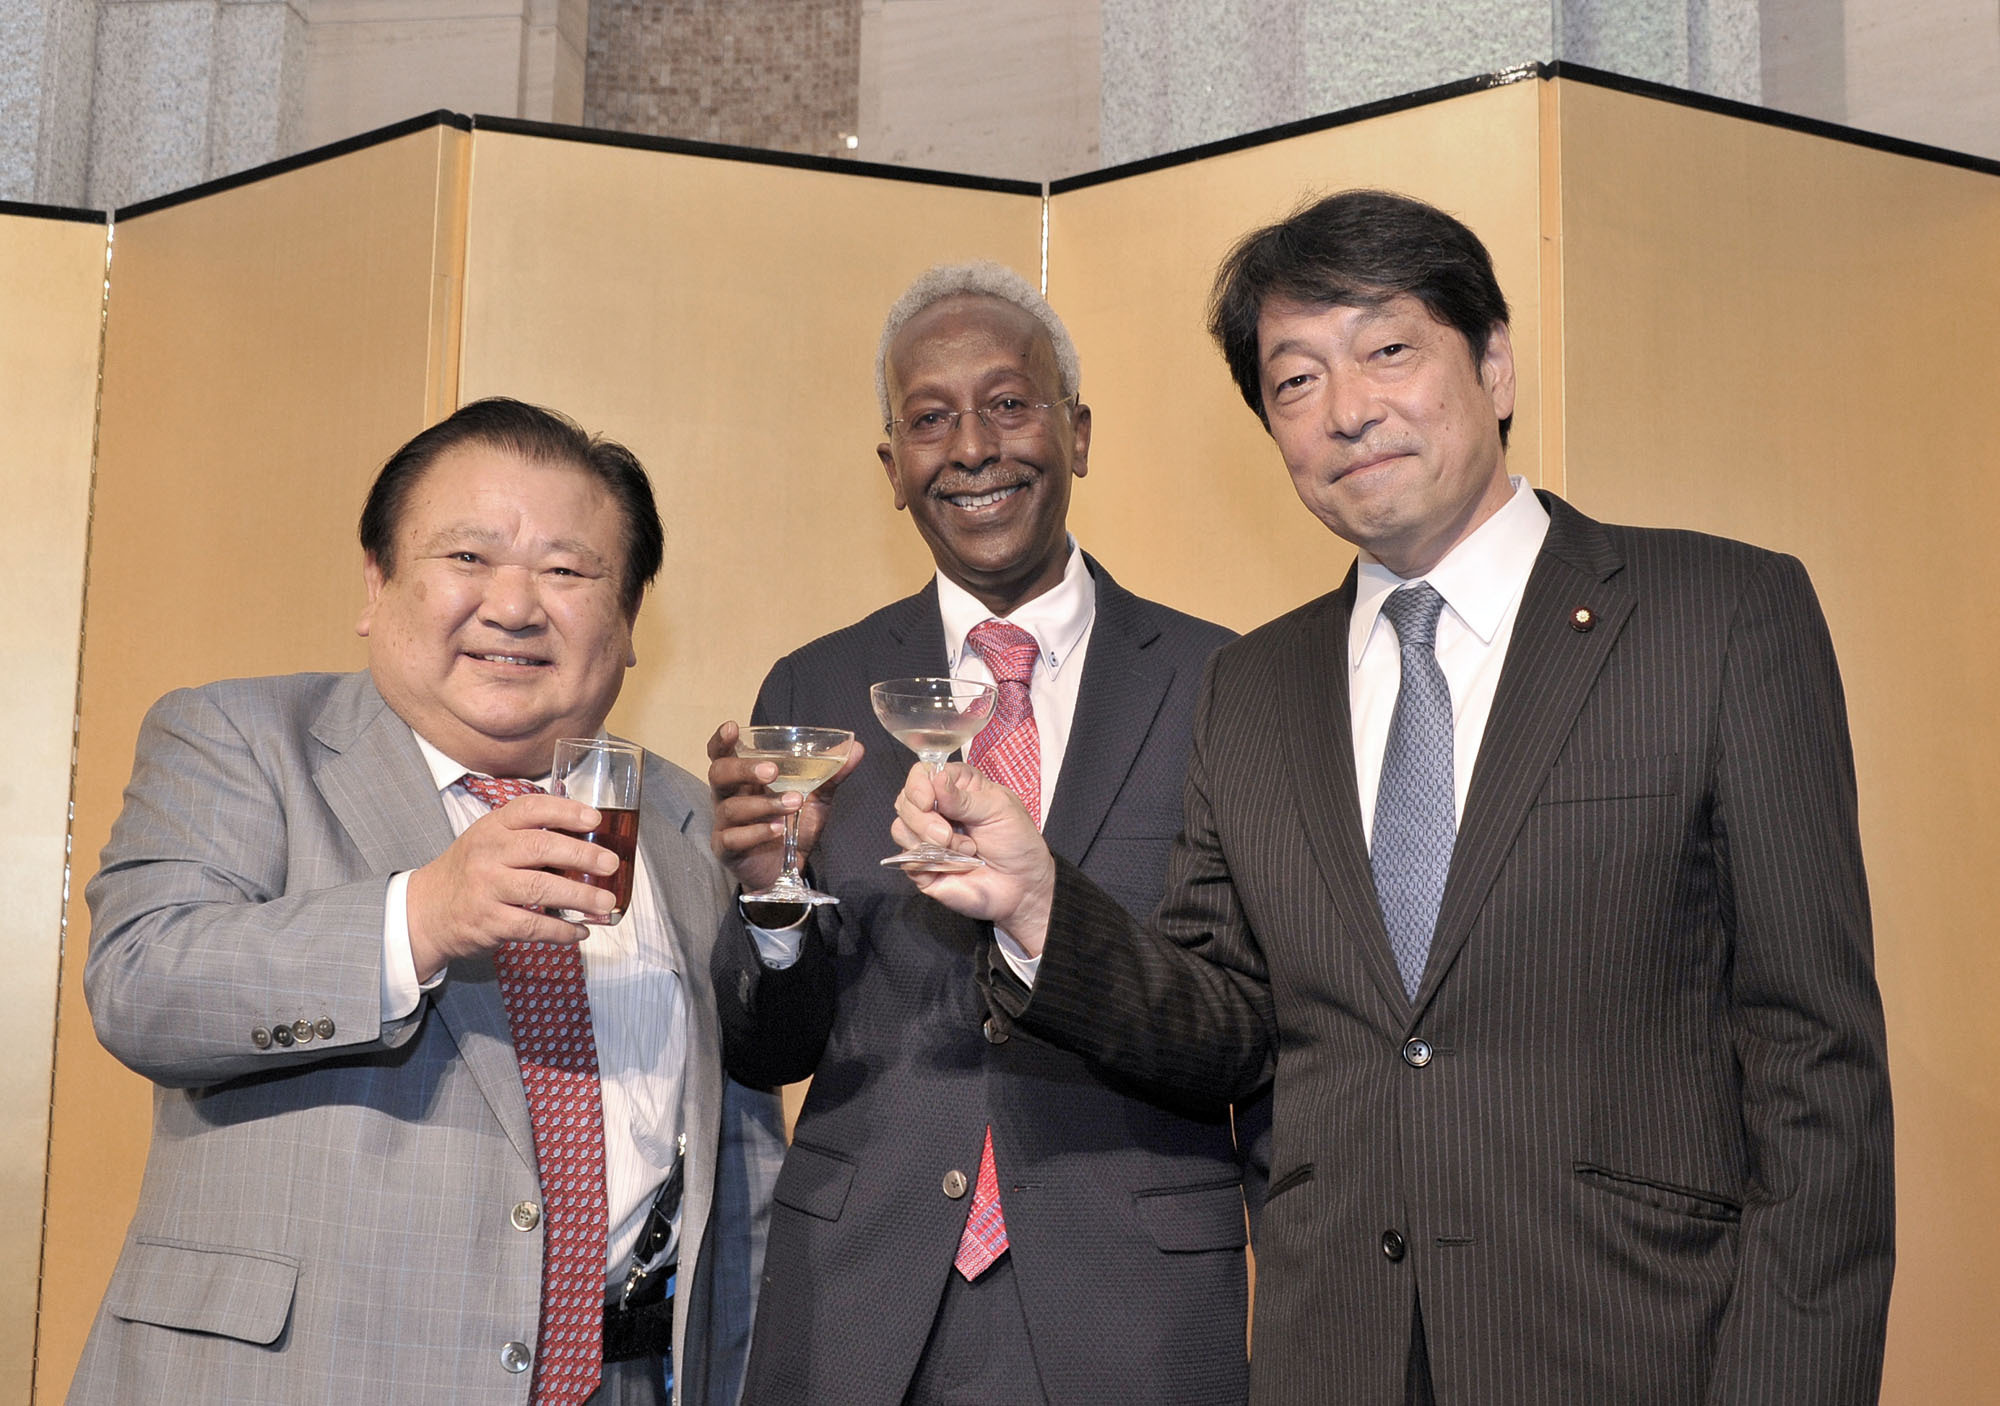 Djibouti Ambassador Ahmed Araita Ali (center) makes a toast with Kiyoshi Kimura (left), president of Sushi Zanmai, and Itsunori Onodera, former defense minister and president of the Japan-Djibouti Friendship Parliamentary Association, during a reception to celebrate the 40th anniversary of the independence of Djibouti at Hotel Okura Tokyo on June 27. |  YOSHIAKI MIURA